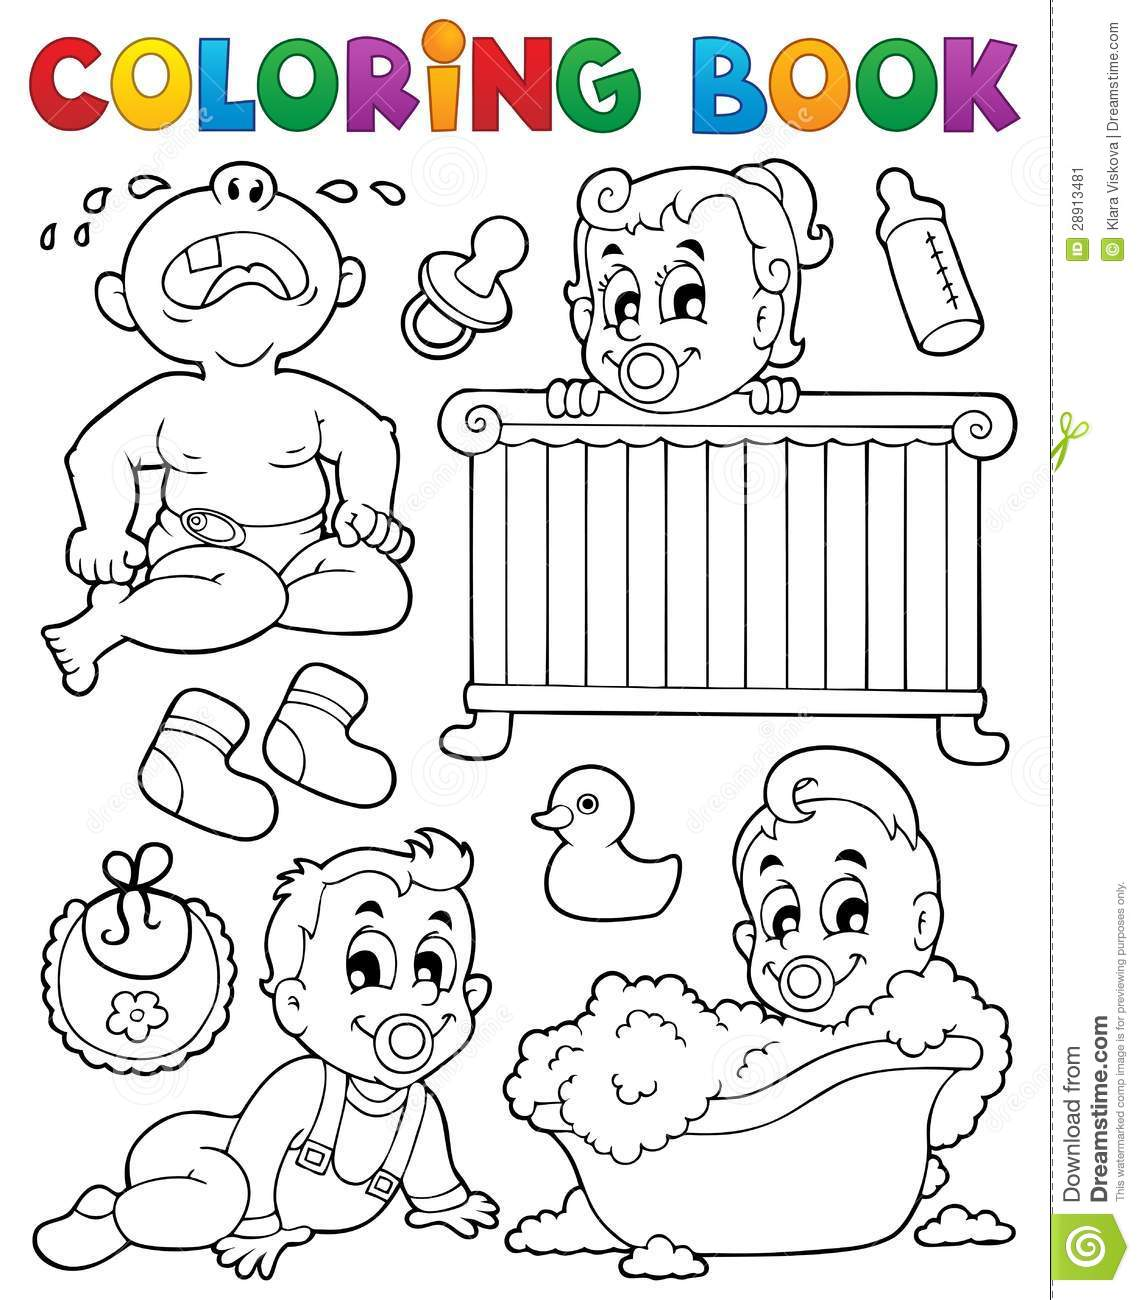 Coloring Book Babies Theme Image 1 Stock Image - Image: 28913481